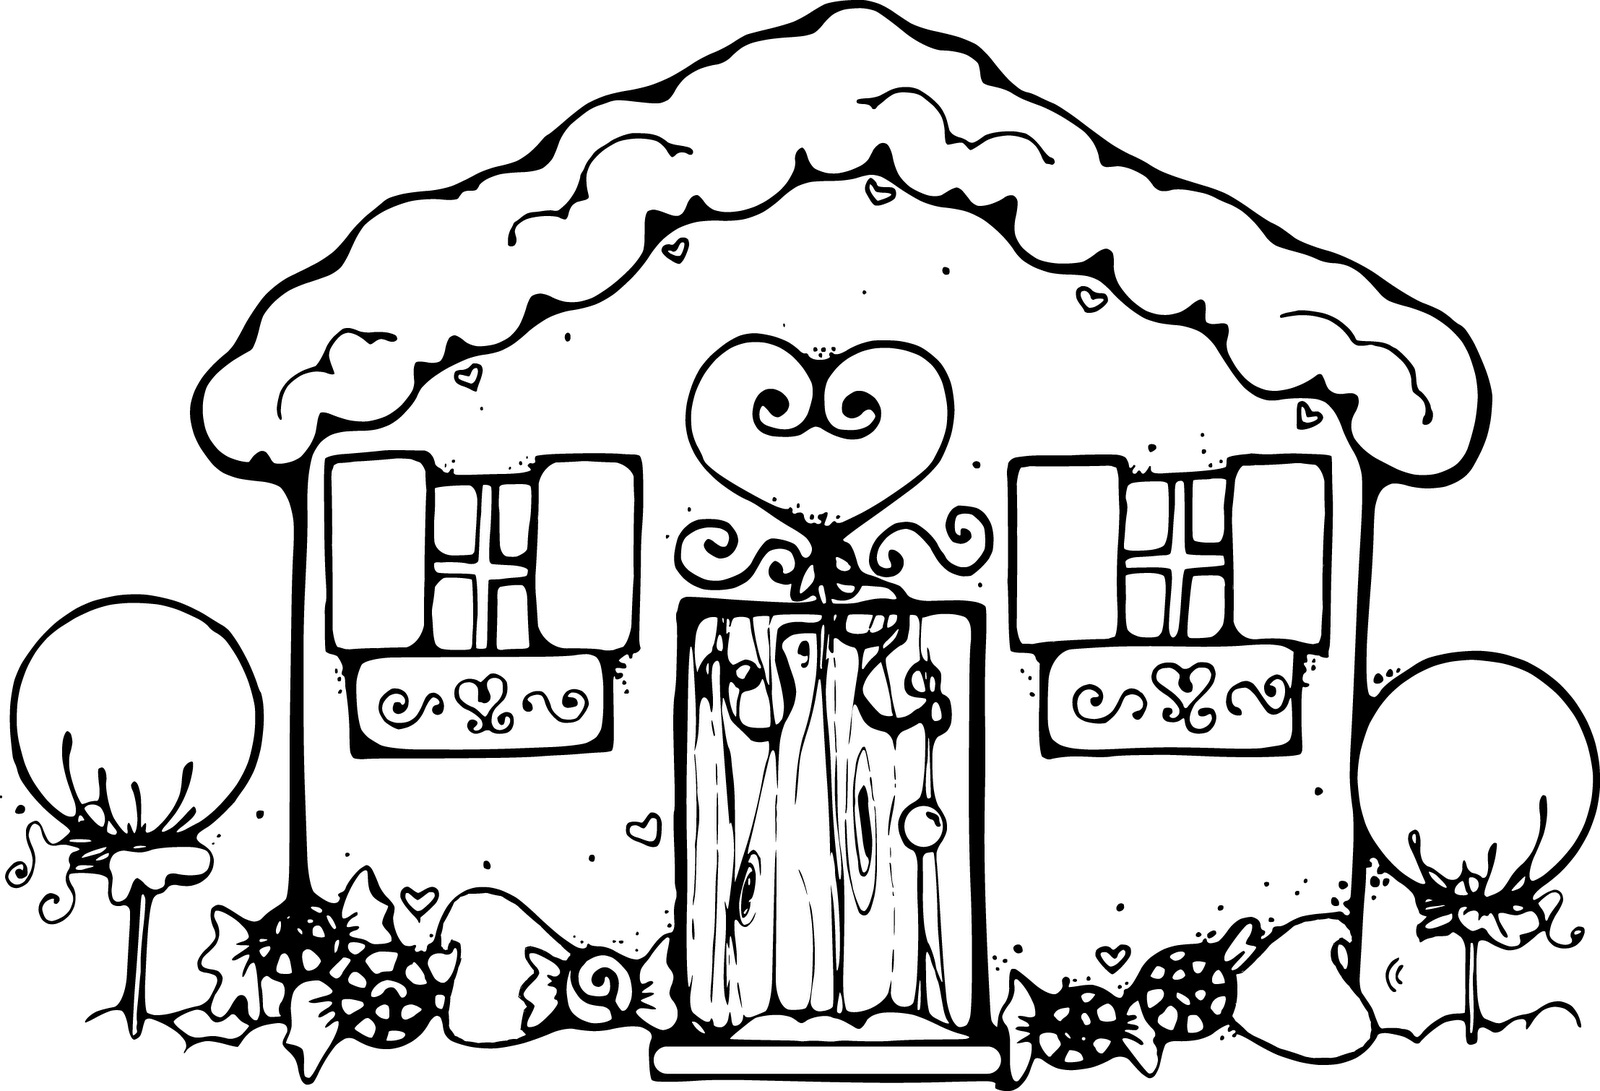 coloring pages of house 25 free printable haunted house coloring pages for kids pages of house coloring